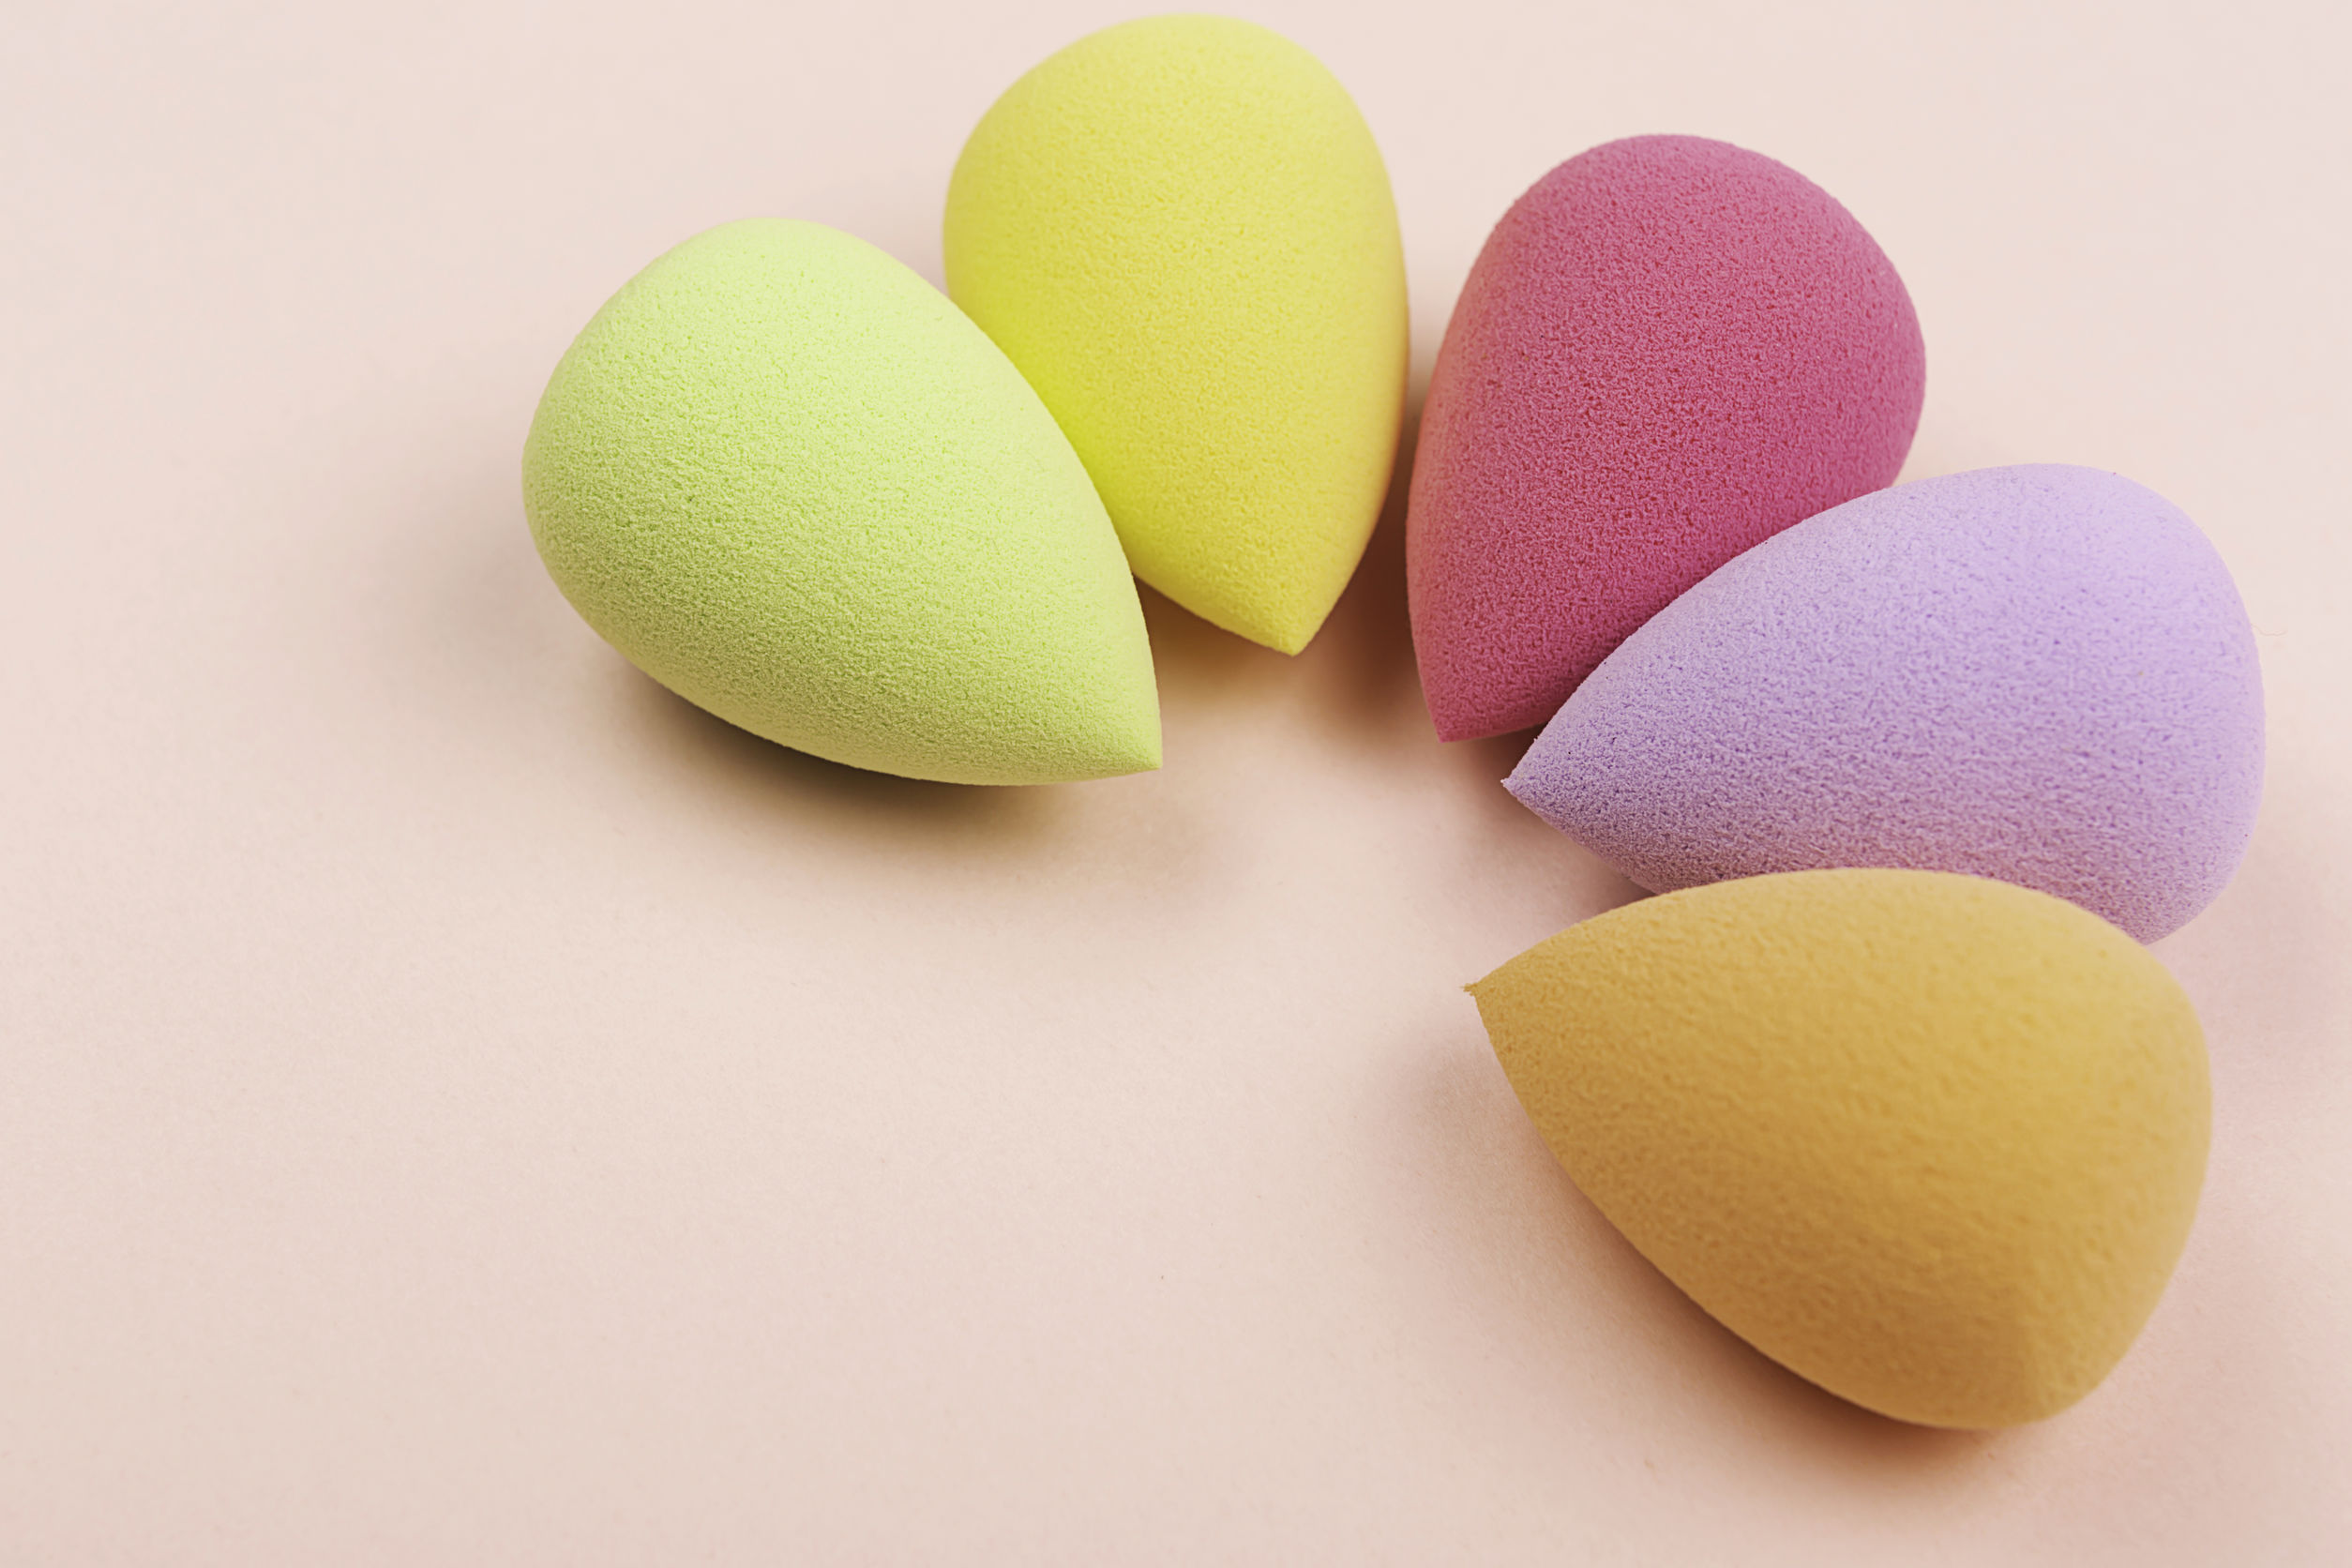 Best Beauty Blender 2020: Shopping Guide & Review